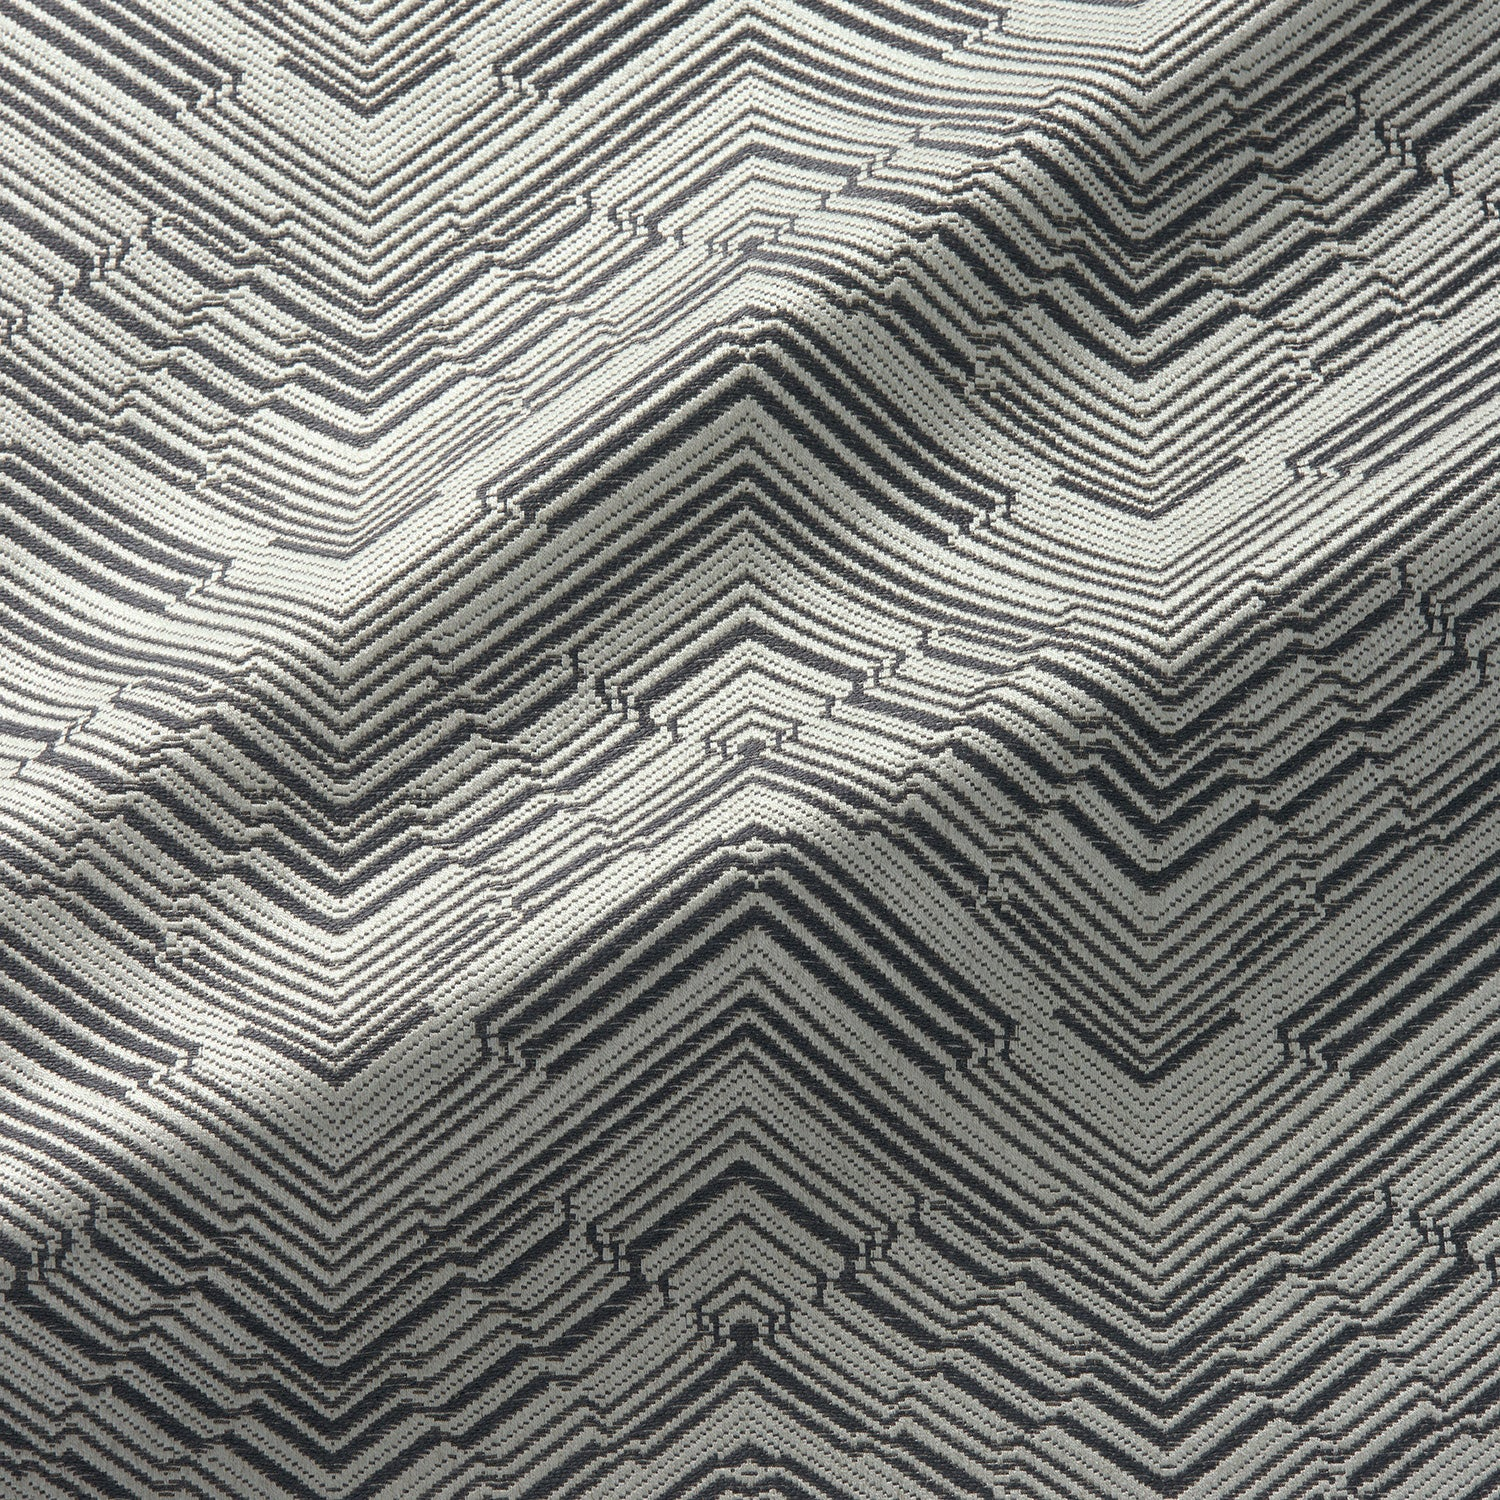 Fabric swatch of a stain resistant herringbone weave design in dark neutral colours, suitable for curtains and upholstery